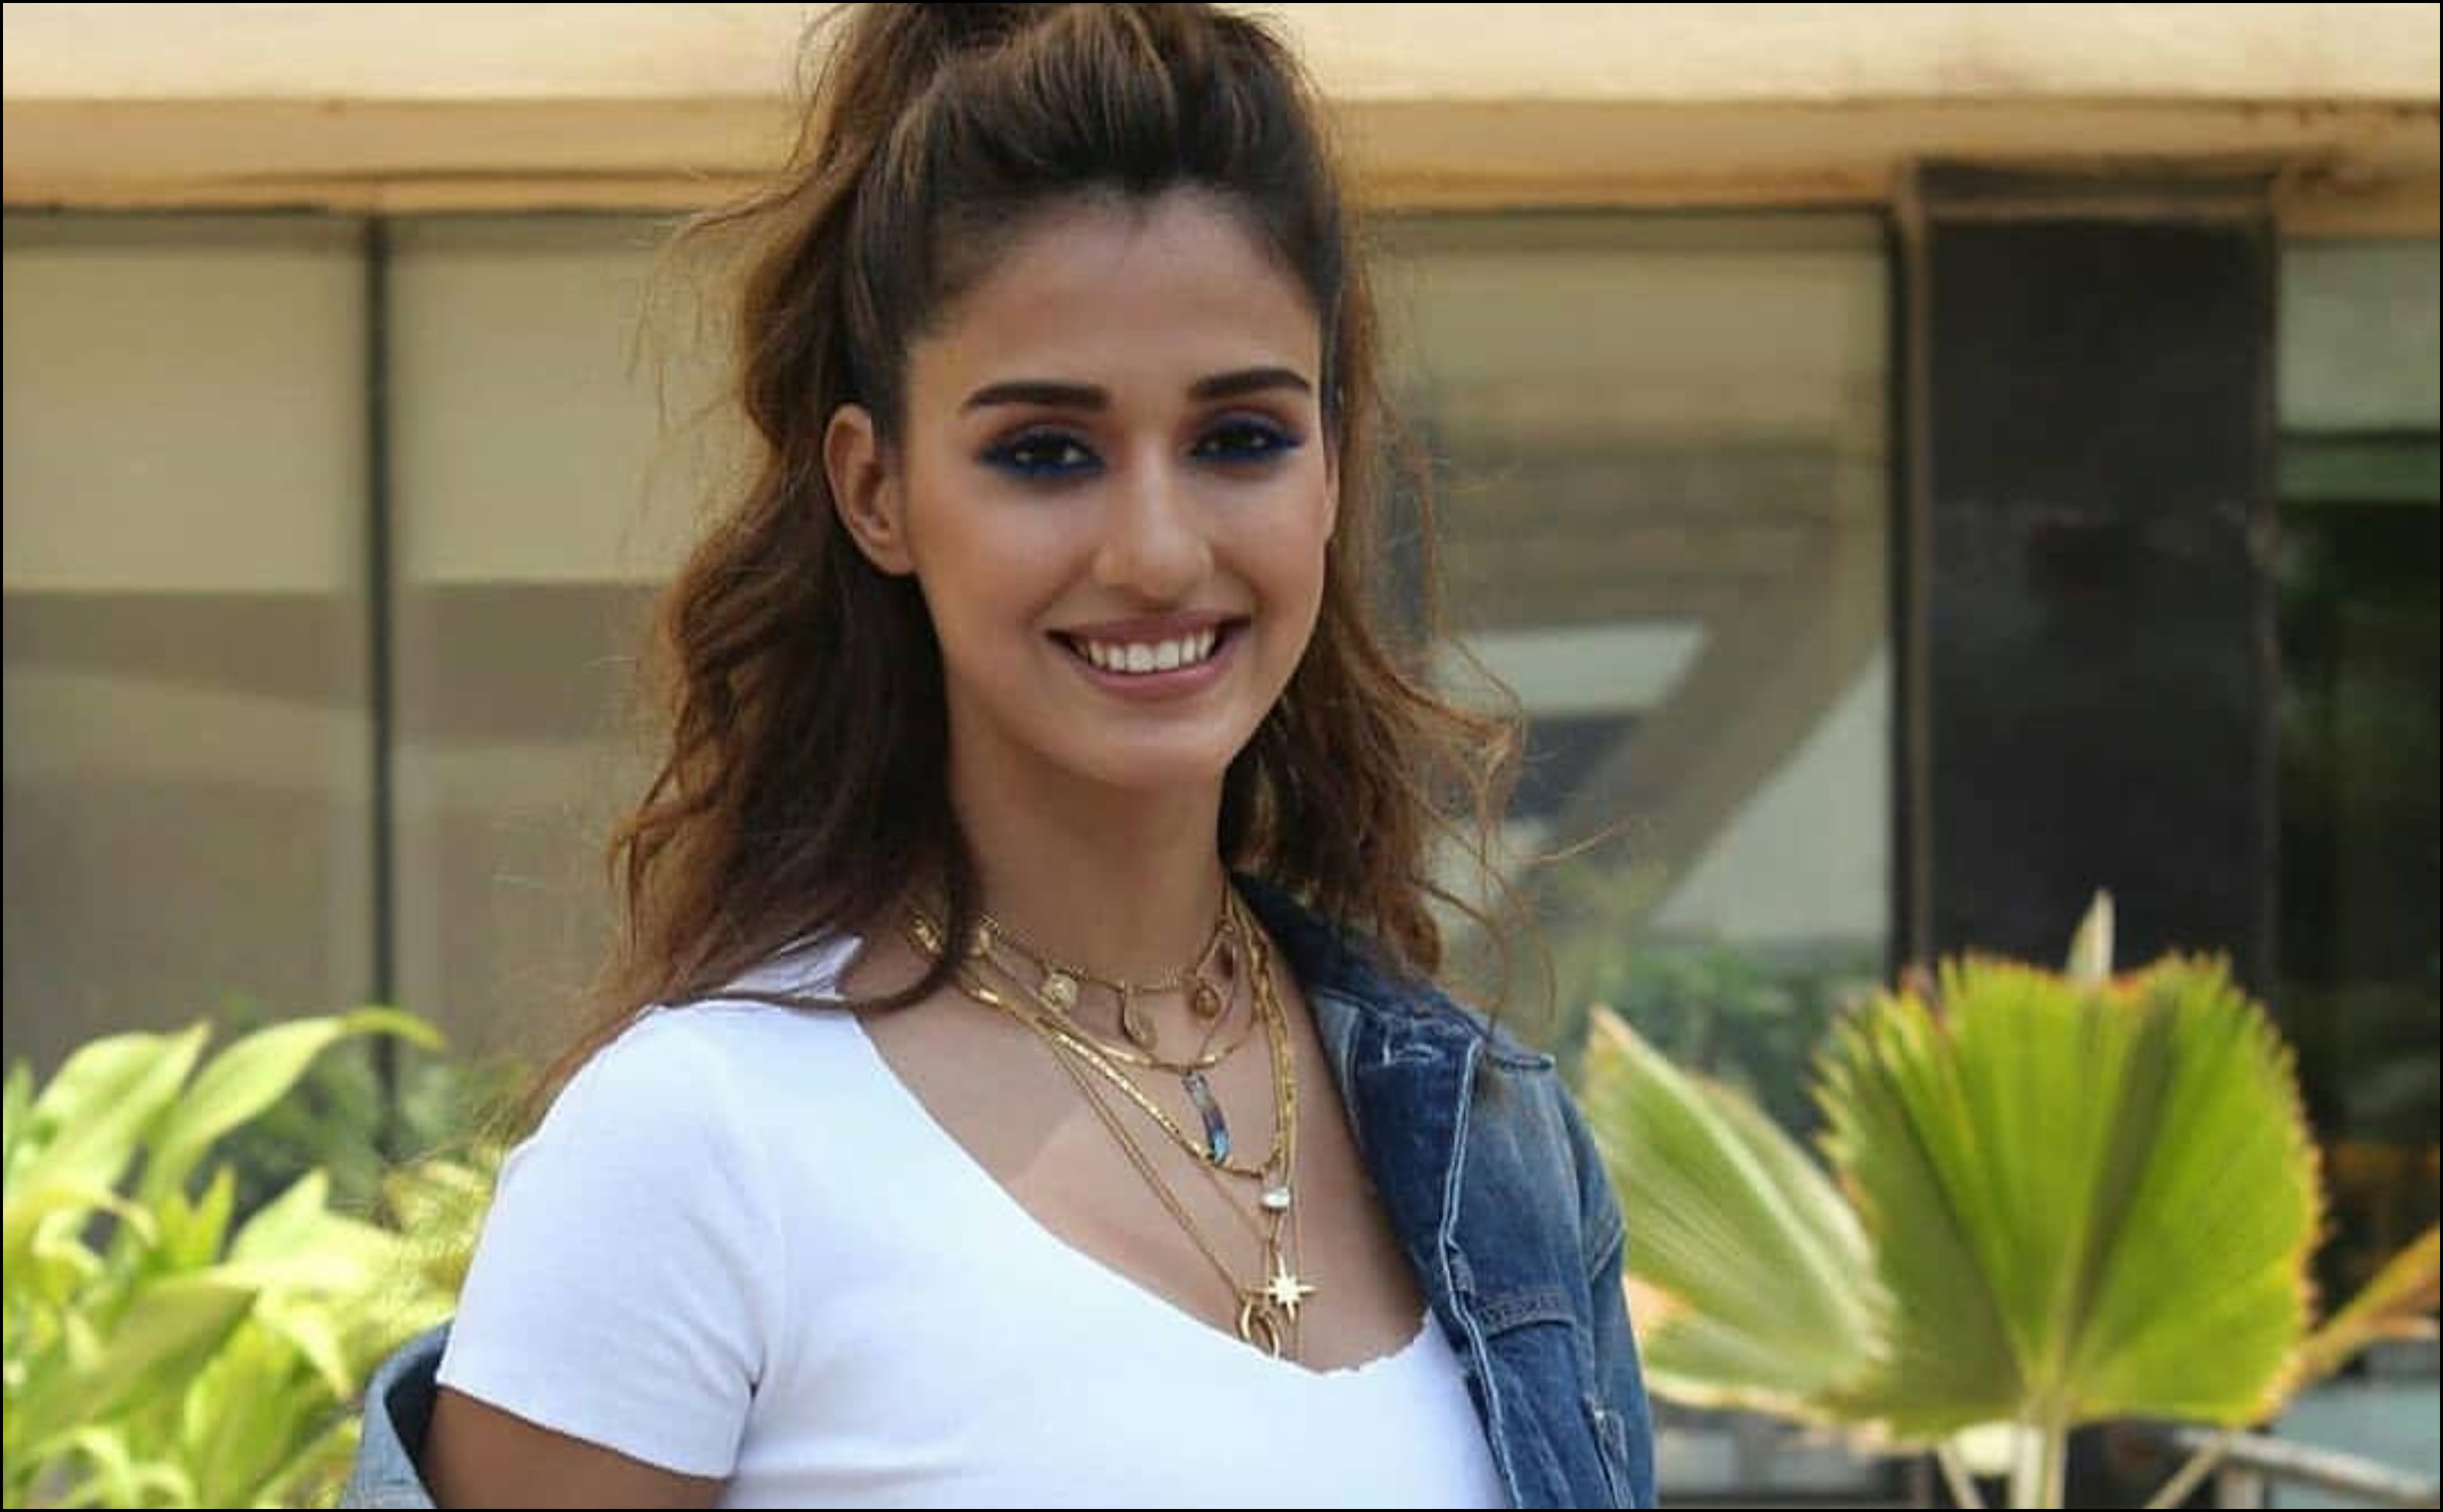 'I love action films and thriller is one of my most favourite genres': Disha Patani